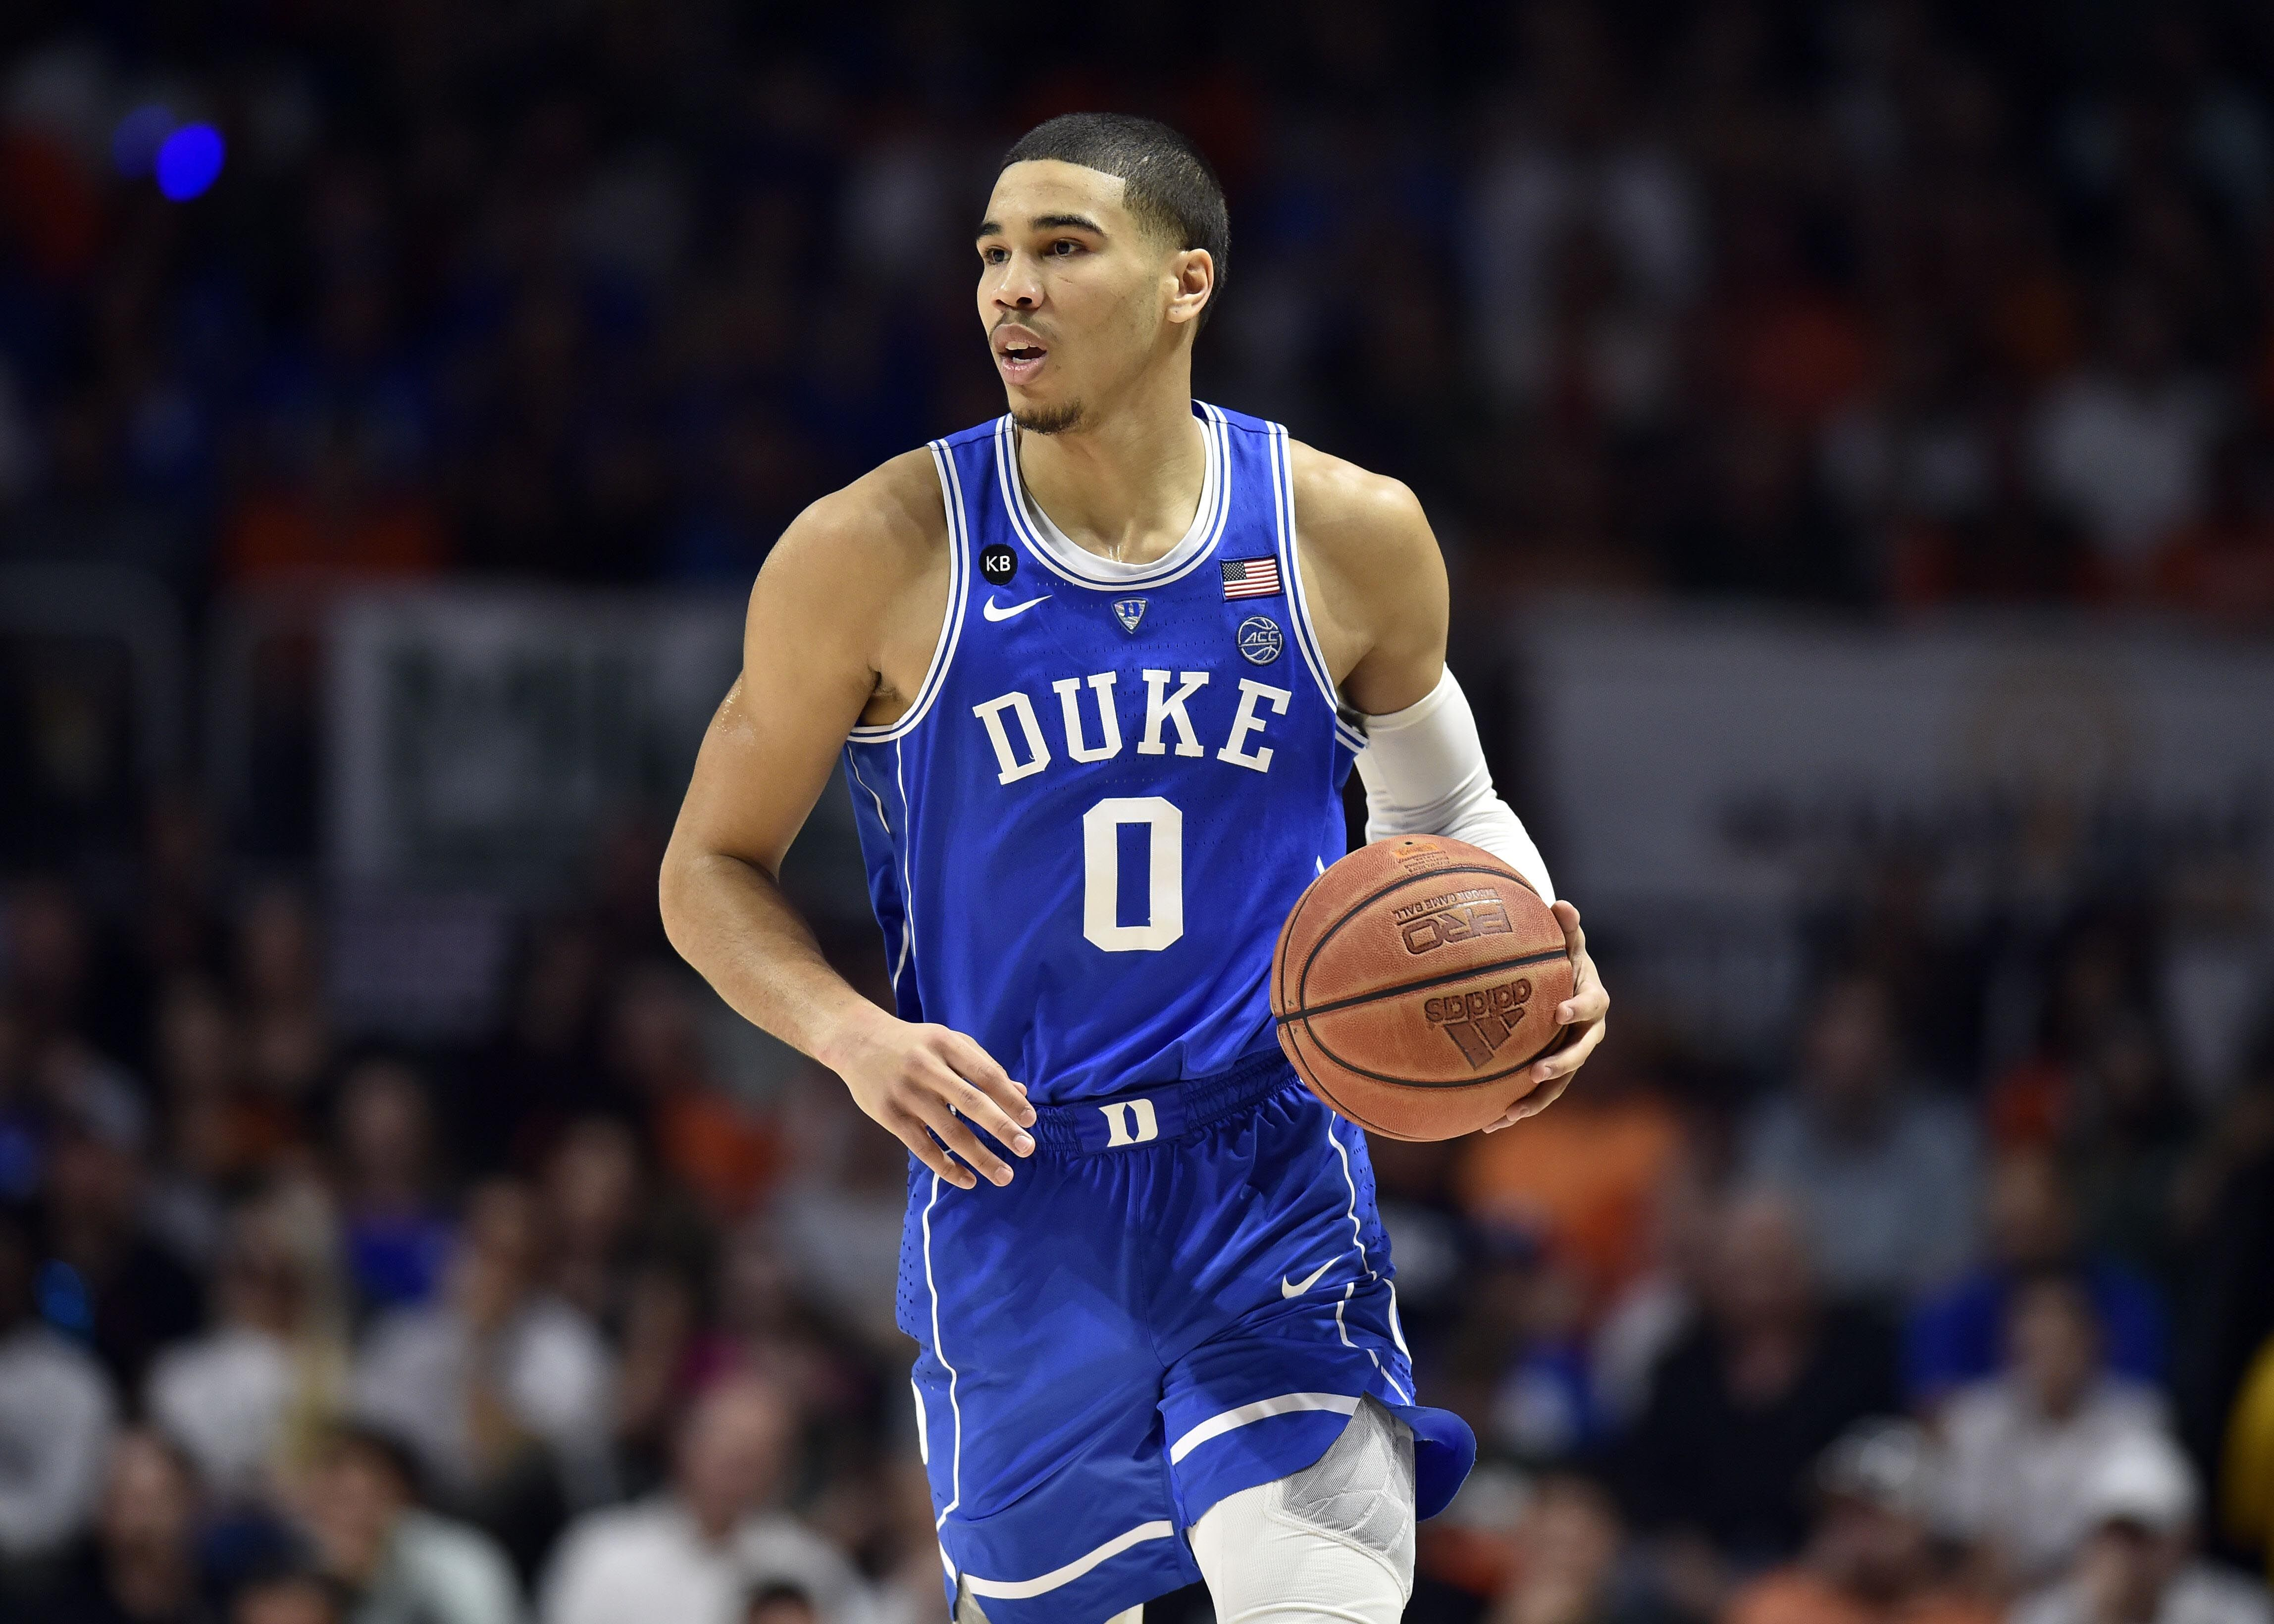 C J additionally 4 additionally 5 moreover Ranker Ncaa Basketball moreover Usc Basketball 2018 Recruiting Class Now Has Three Four Star Players. on duke basketball best players all time